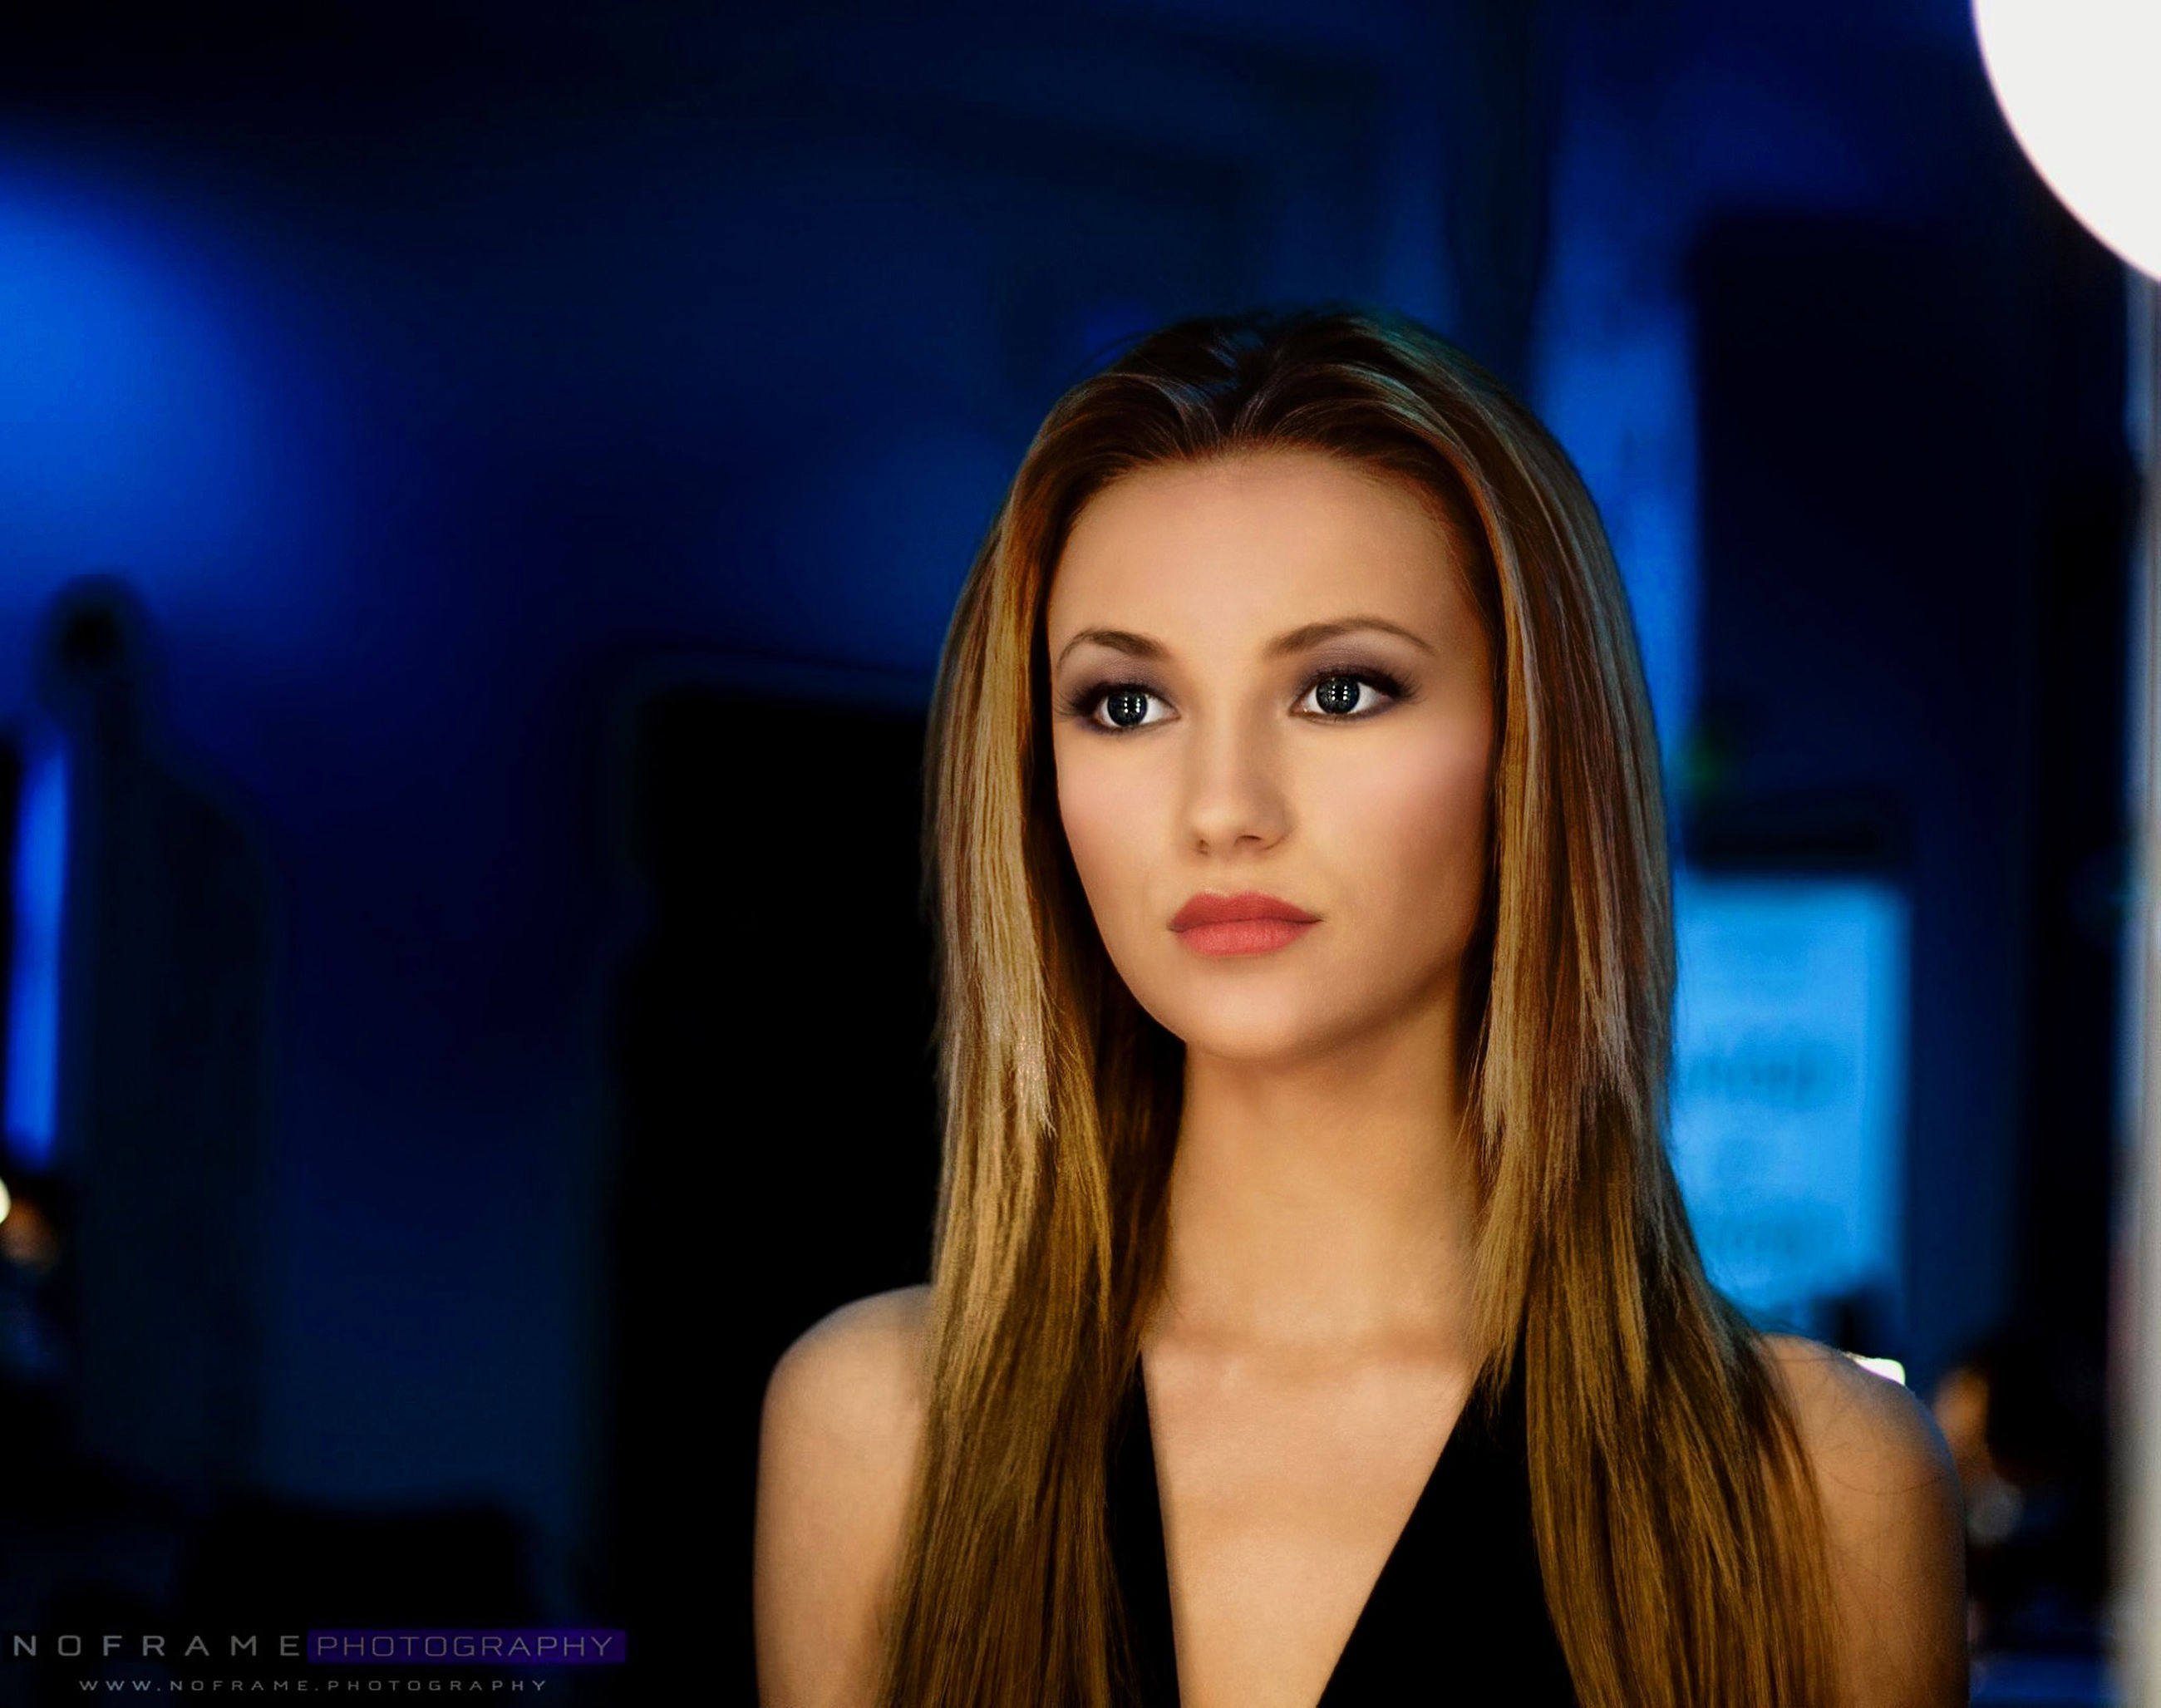 portrait, young adult, young women, looking at camera, headshot, long hair, person, front view, lifestyles, head and shoulders, focus on foreground, smiling, indoors, close-up, leisure activity, beauty